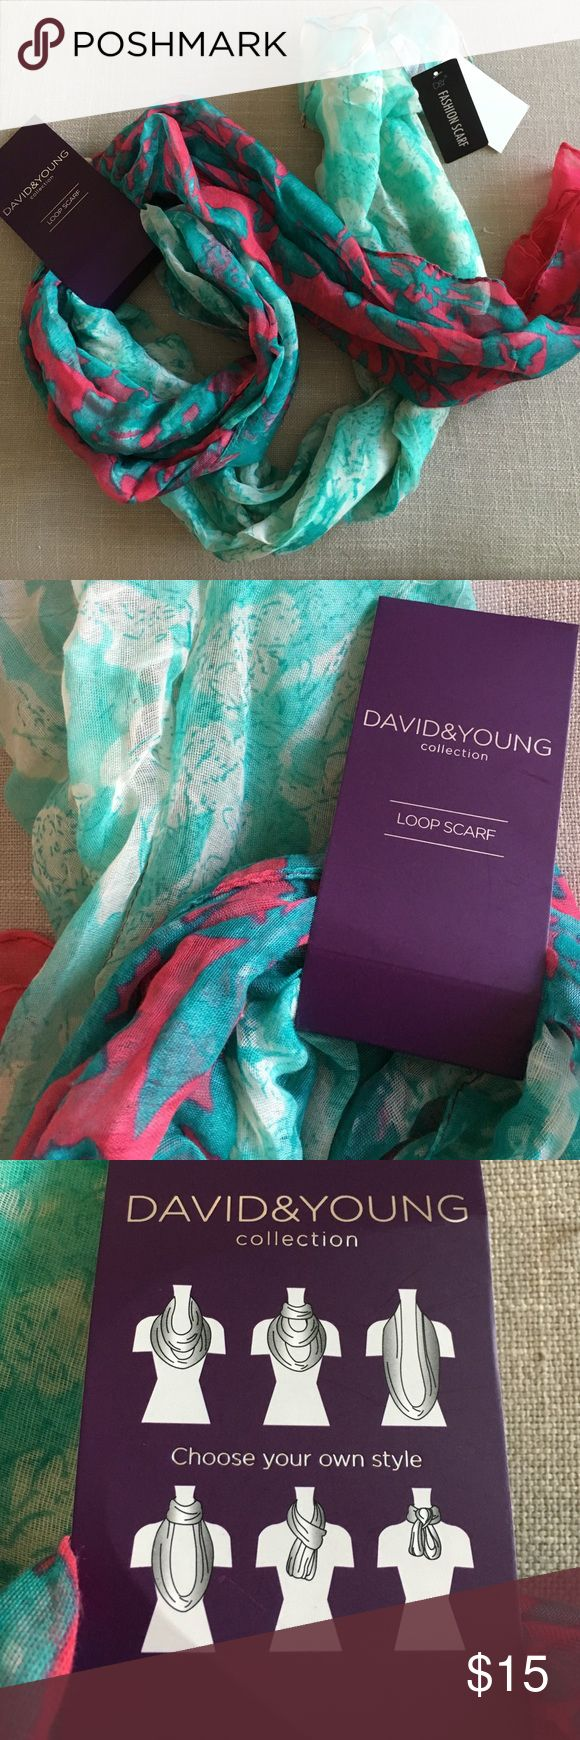 David & Young Collection Loop Scarf This David & Young Collection Loop Scarf is a pretty floral patterned pink and green mix. New scarf, never worn. I bought this to give a friend as a Mother's Day gift and forgot to add it to her bag and it's too pricey to ship to London now so looking for a good home for it! Smoke free home. David & Young Accessories Scarves & Wraps